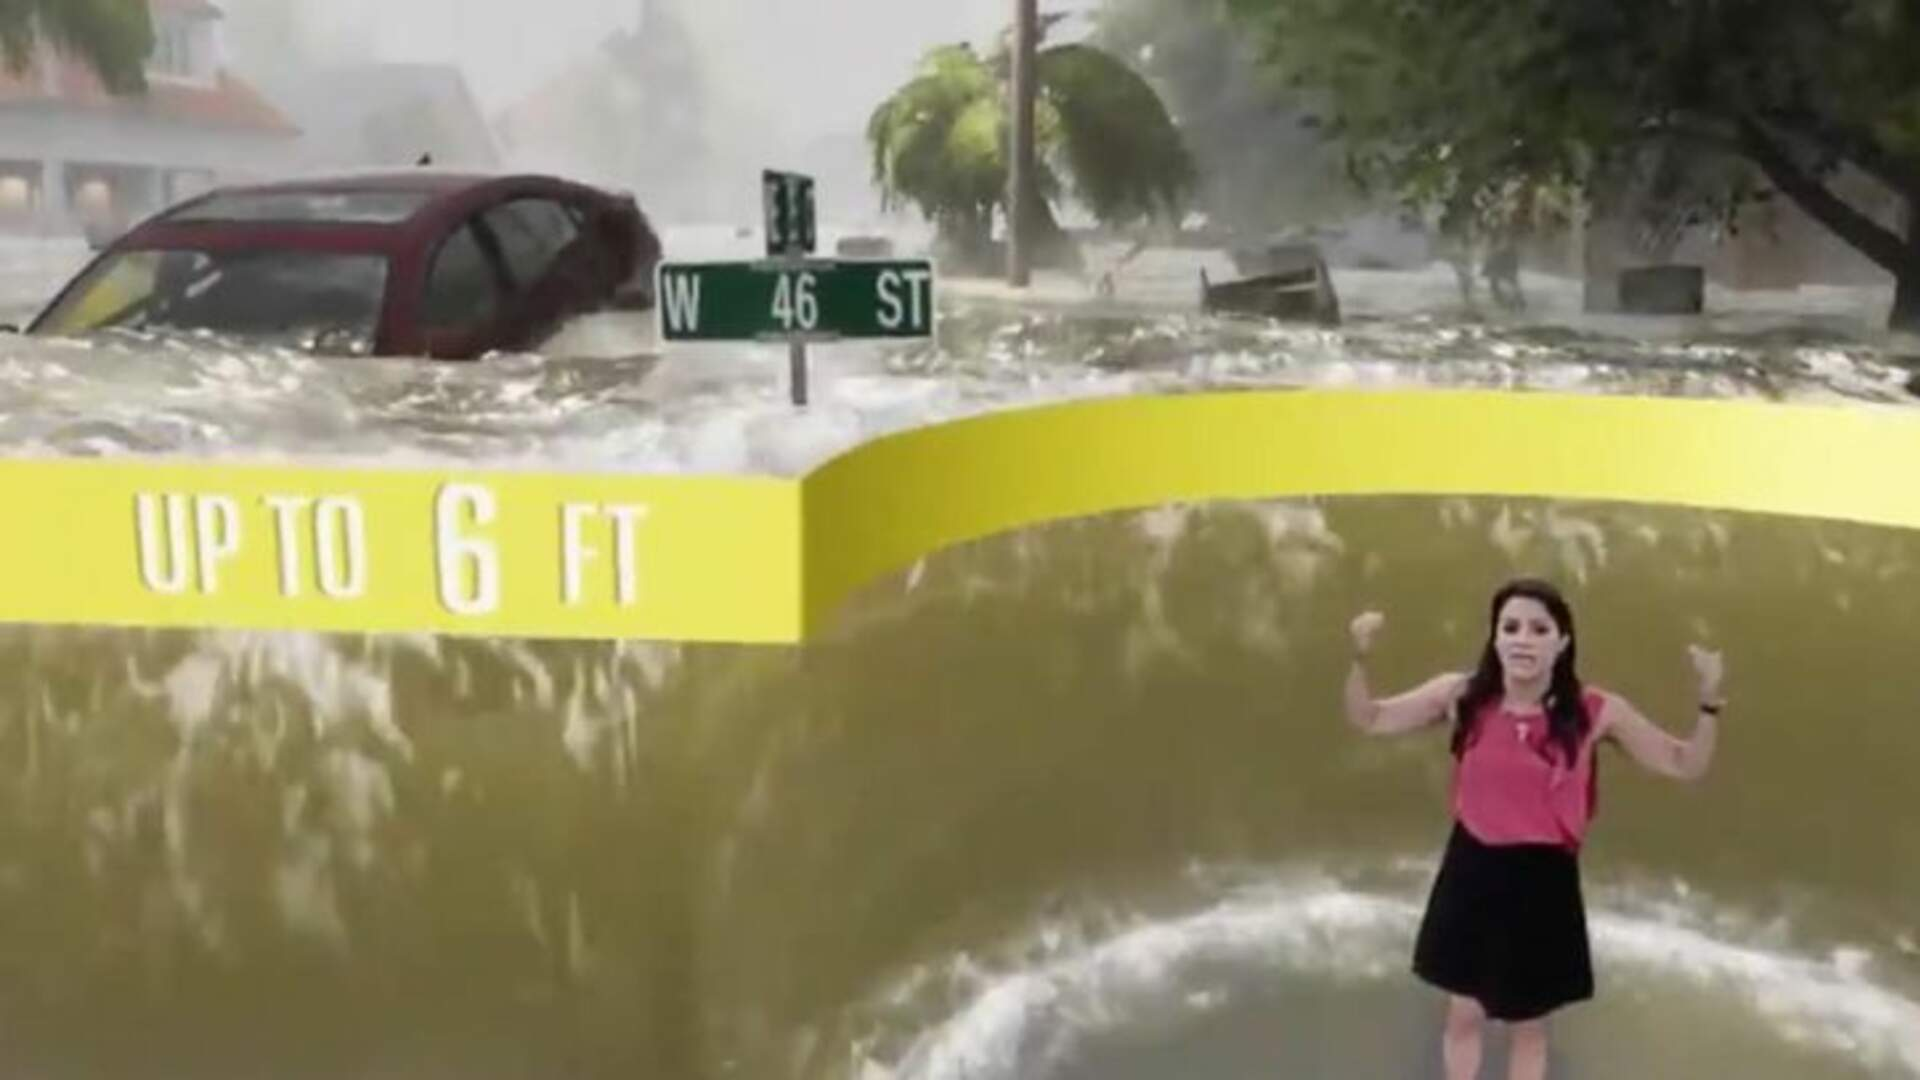 Dramatic Weather Report of Hurricane Florence Storm Surge Was Developed in Unreal Engine 4